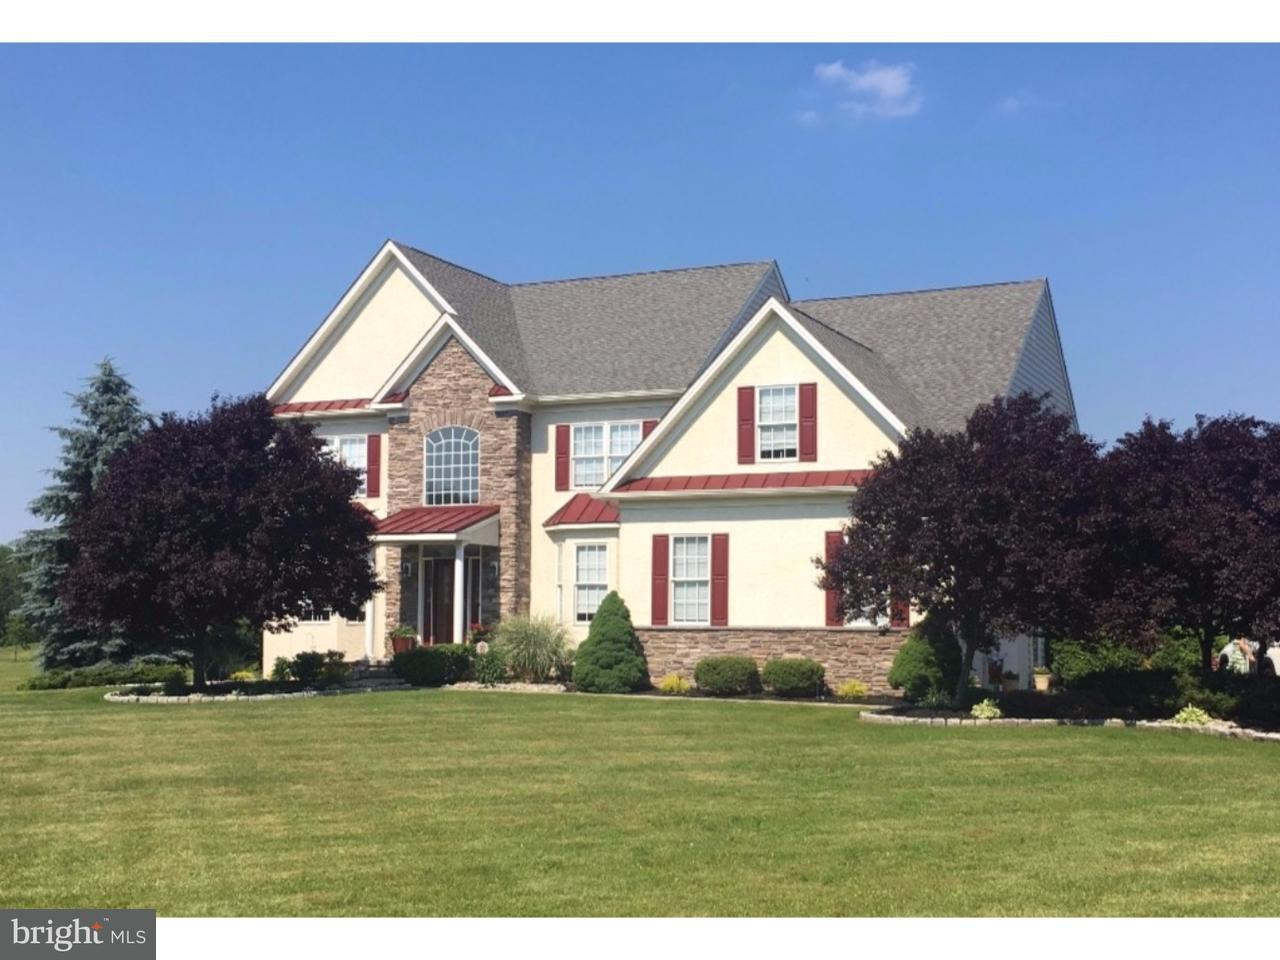 Single Family Home for Sale at 311 SCHOLLS SCHOOL Road Richlandtown, Pennsylvania 18951 United States